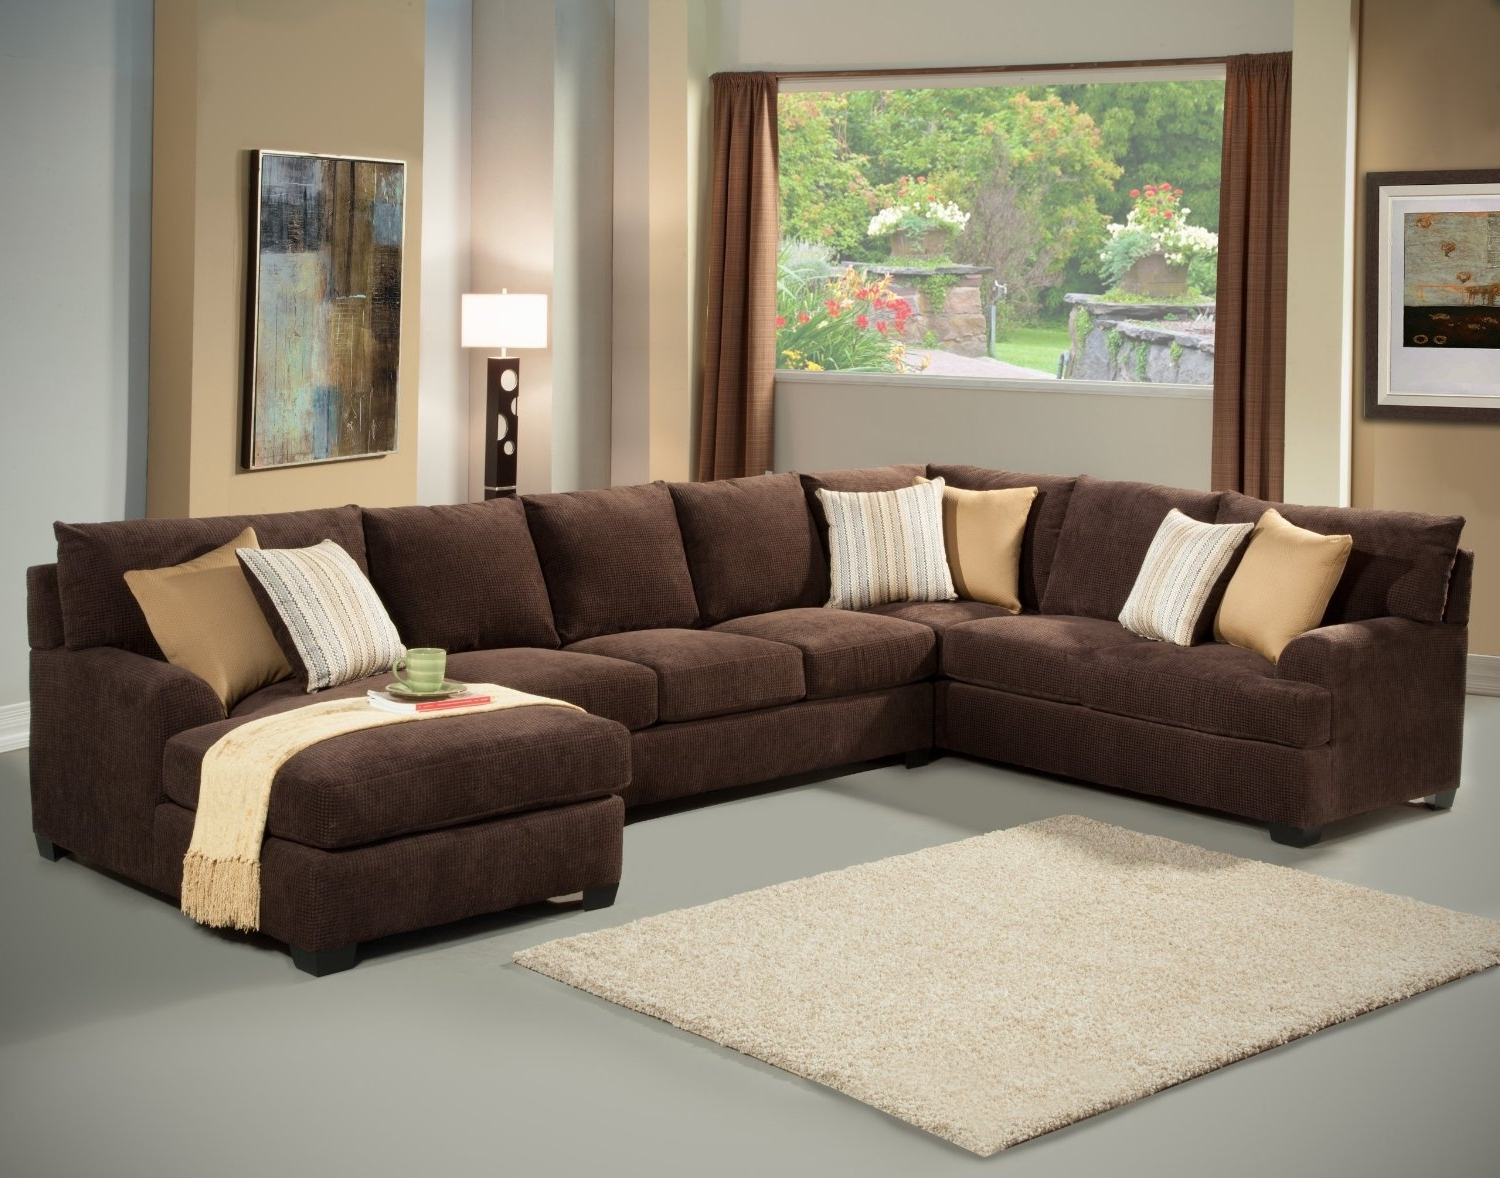 Newest Sofa : Modern Sectional Couch With Chaise Lounge Tufted Couch Set For Microfiber Chaise Lounges (View 13 of 15)